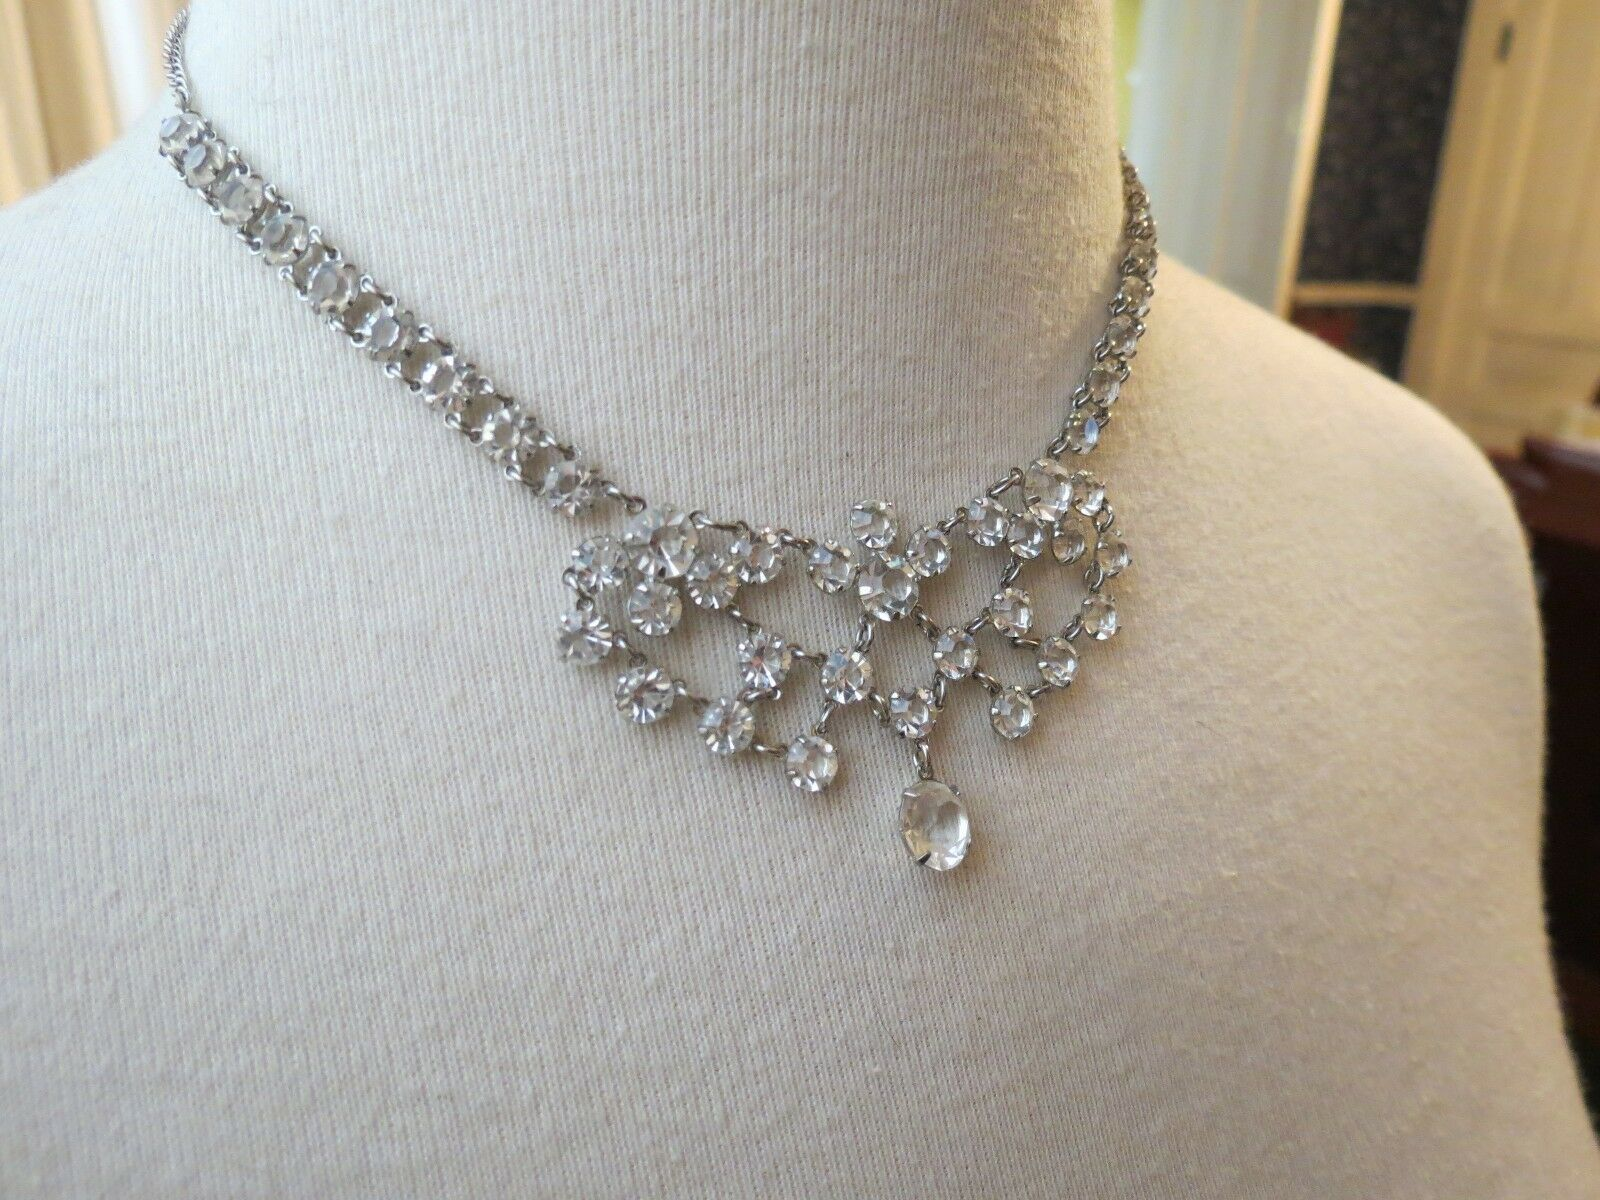 VTG Bezel Set Clear Crystal Necklace Choker Mini Bib Silver Plated Dangle Fringe image 3